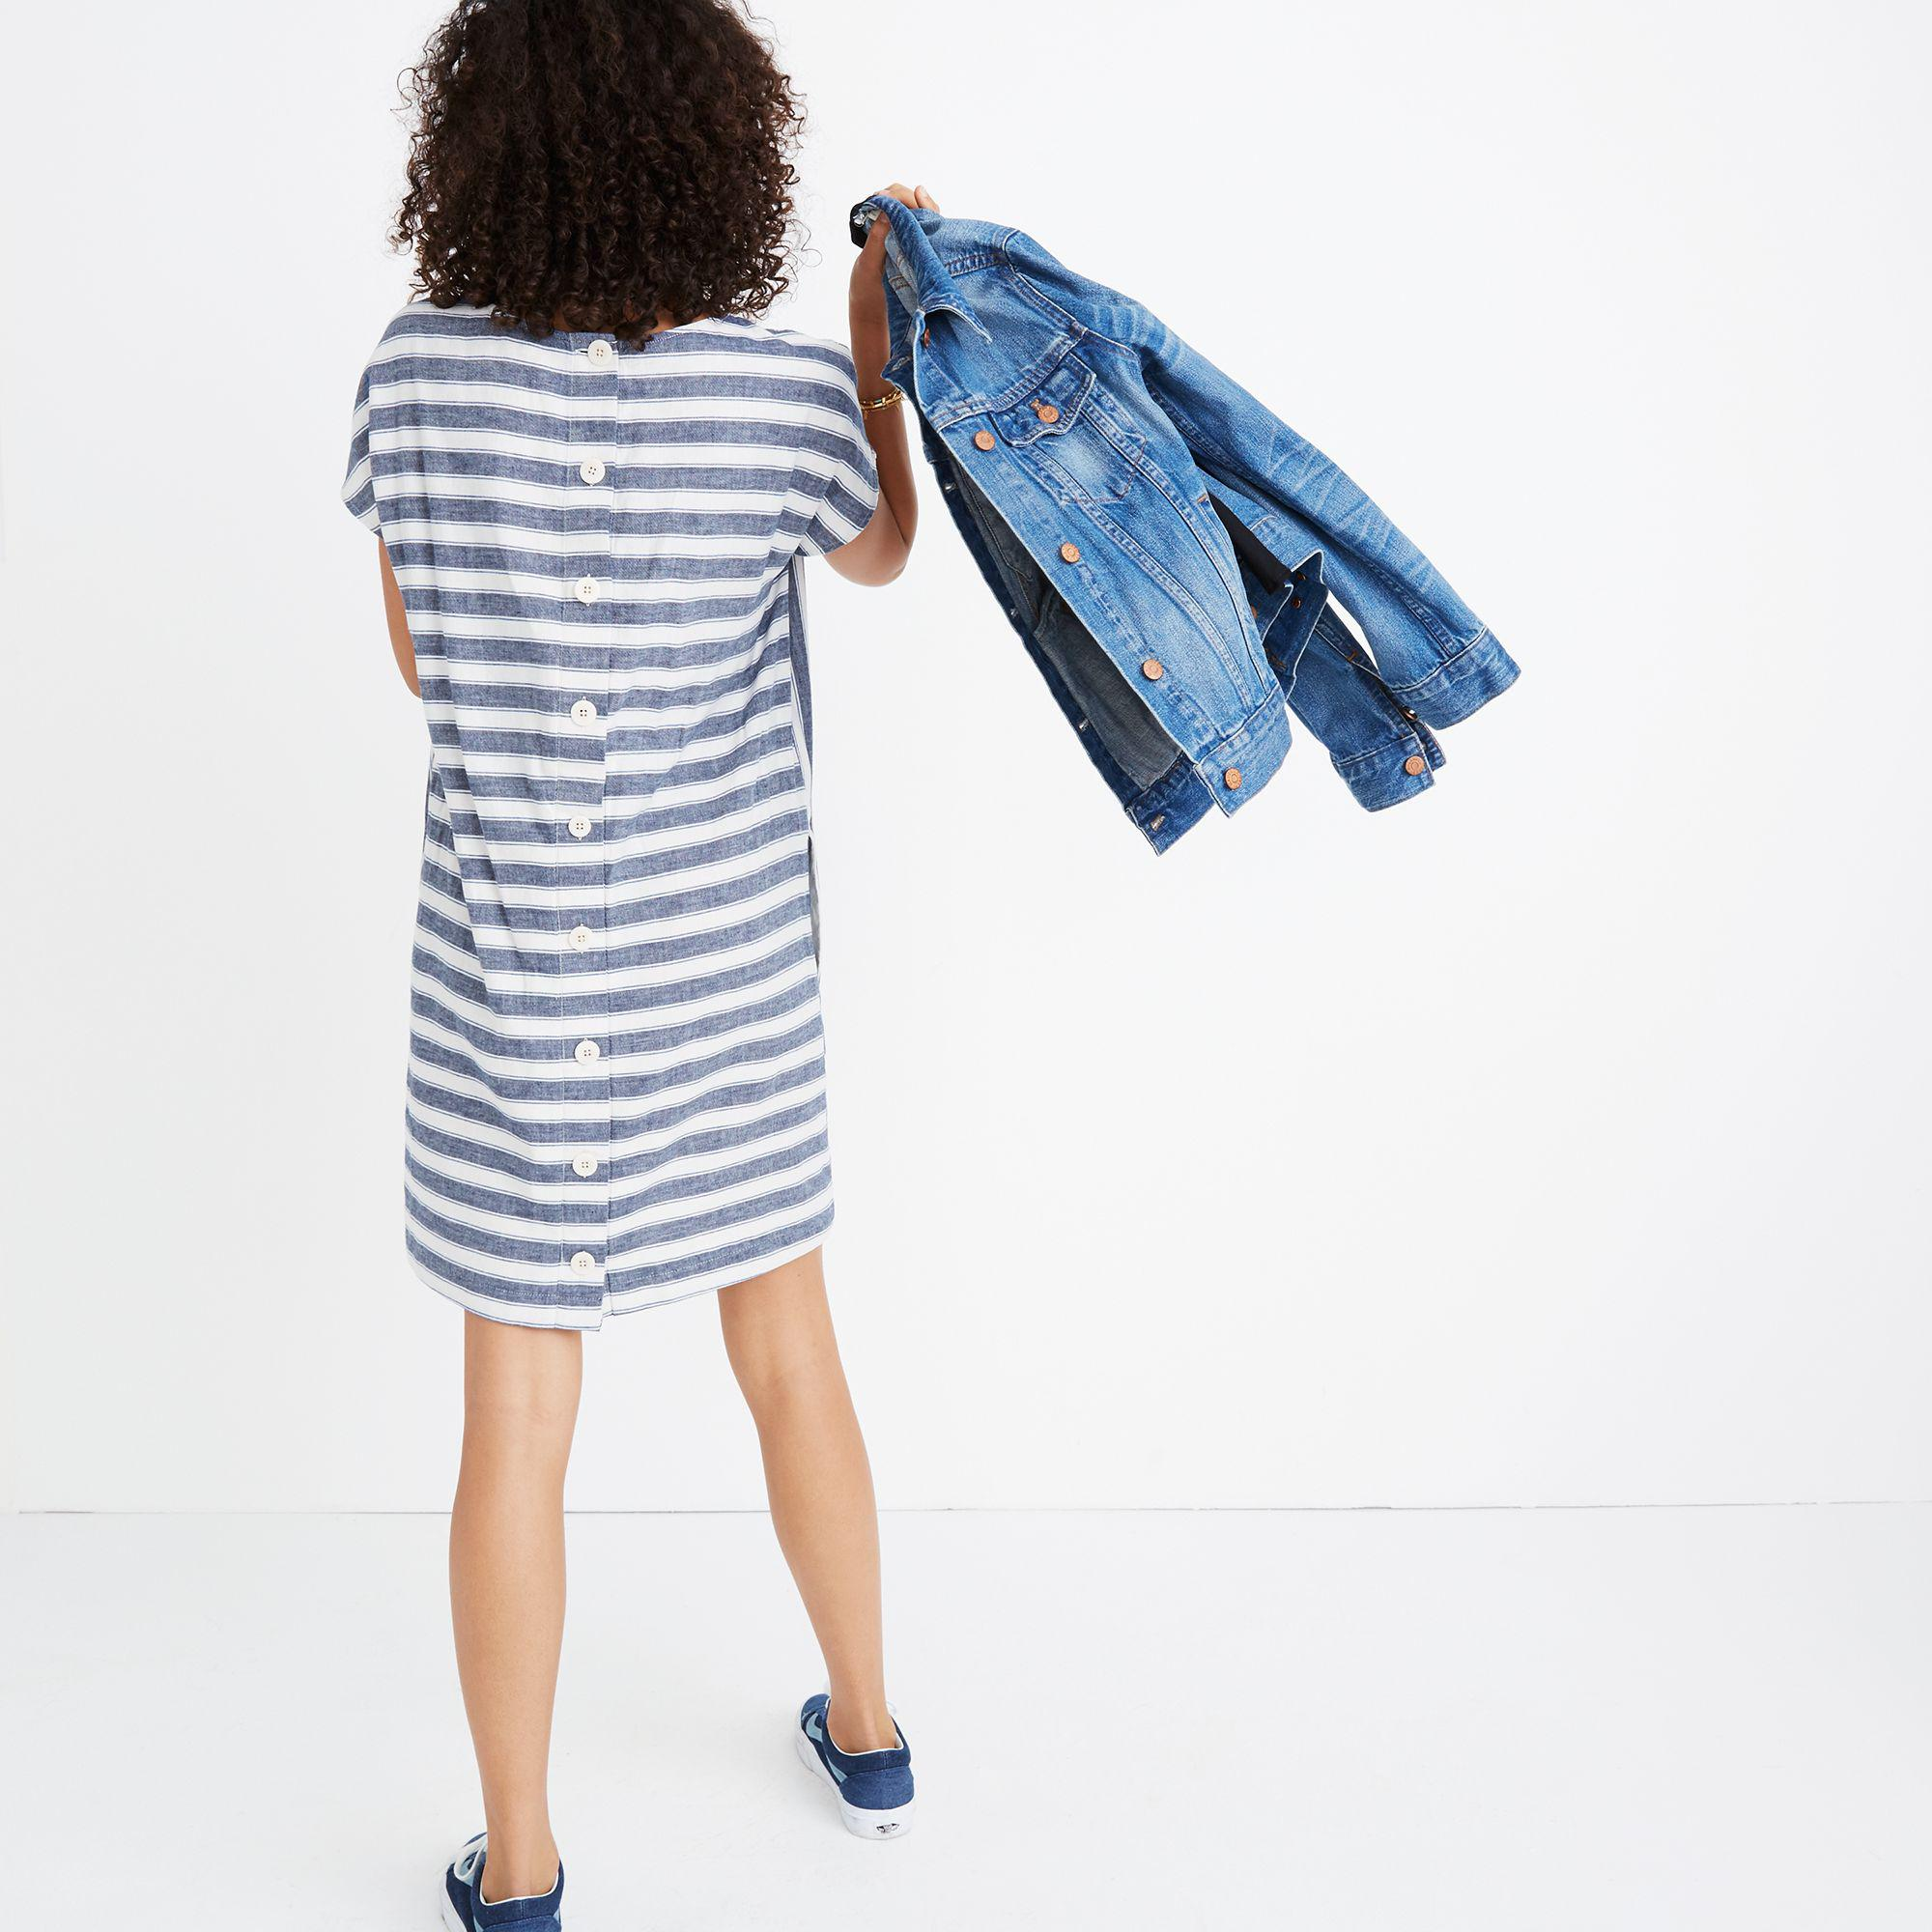 abfc9e1f0fc Lyst - Madewell Stripe-play Button-back Tee Dress in Blue